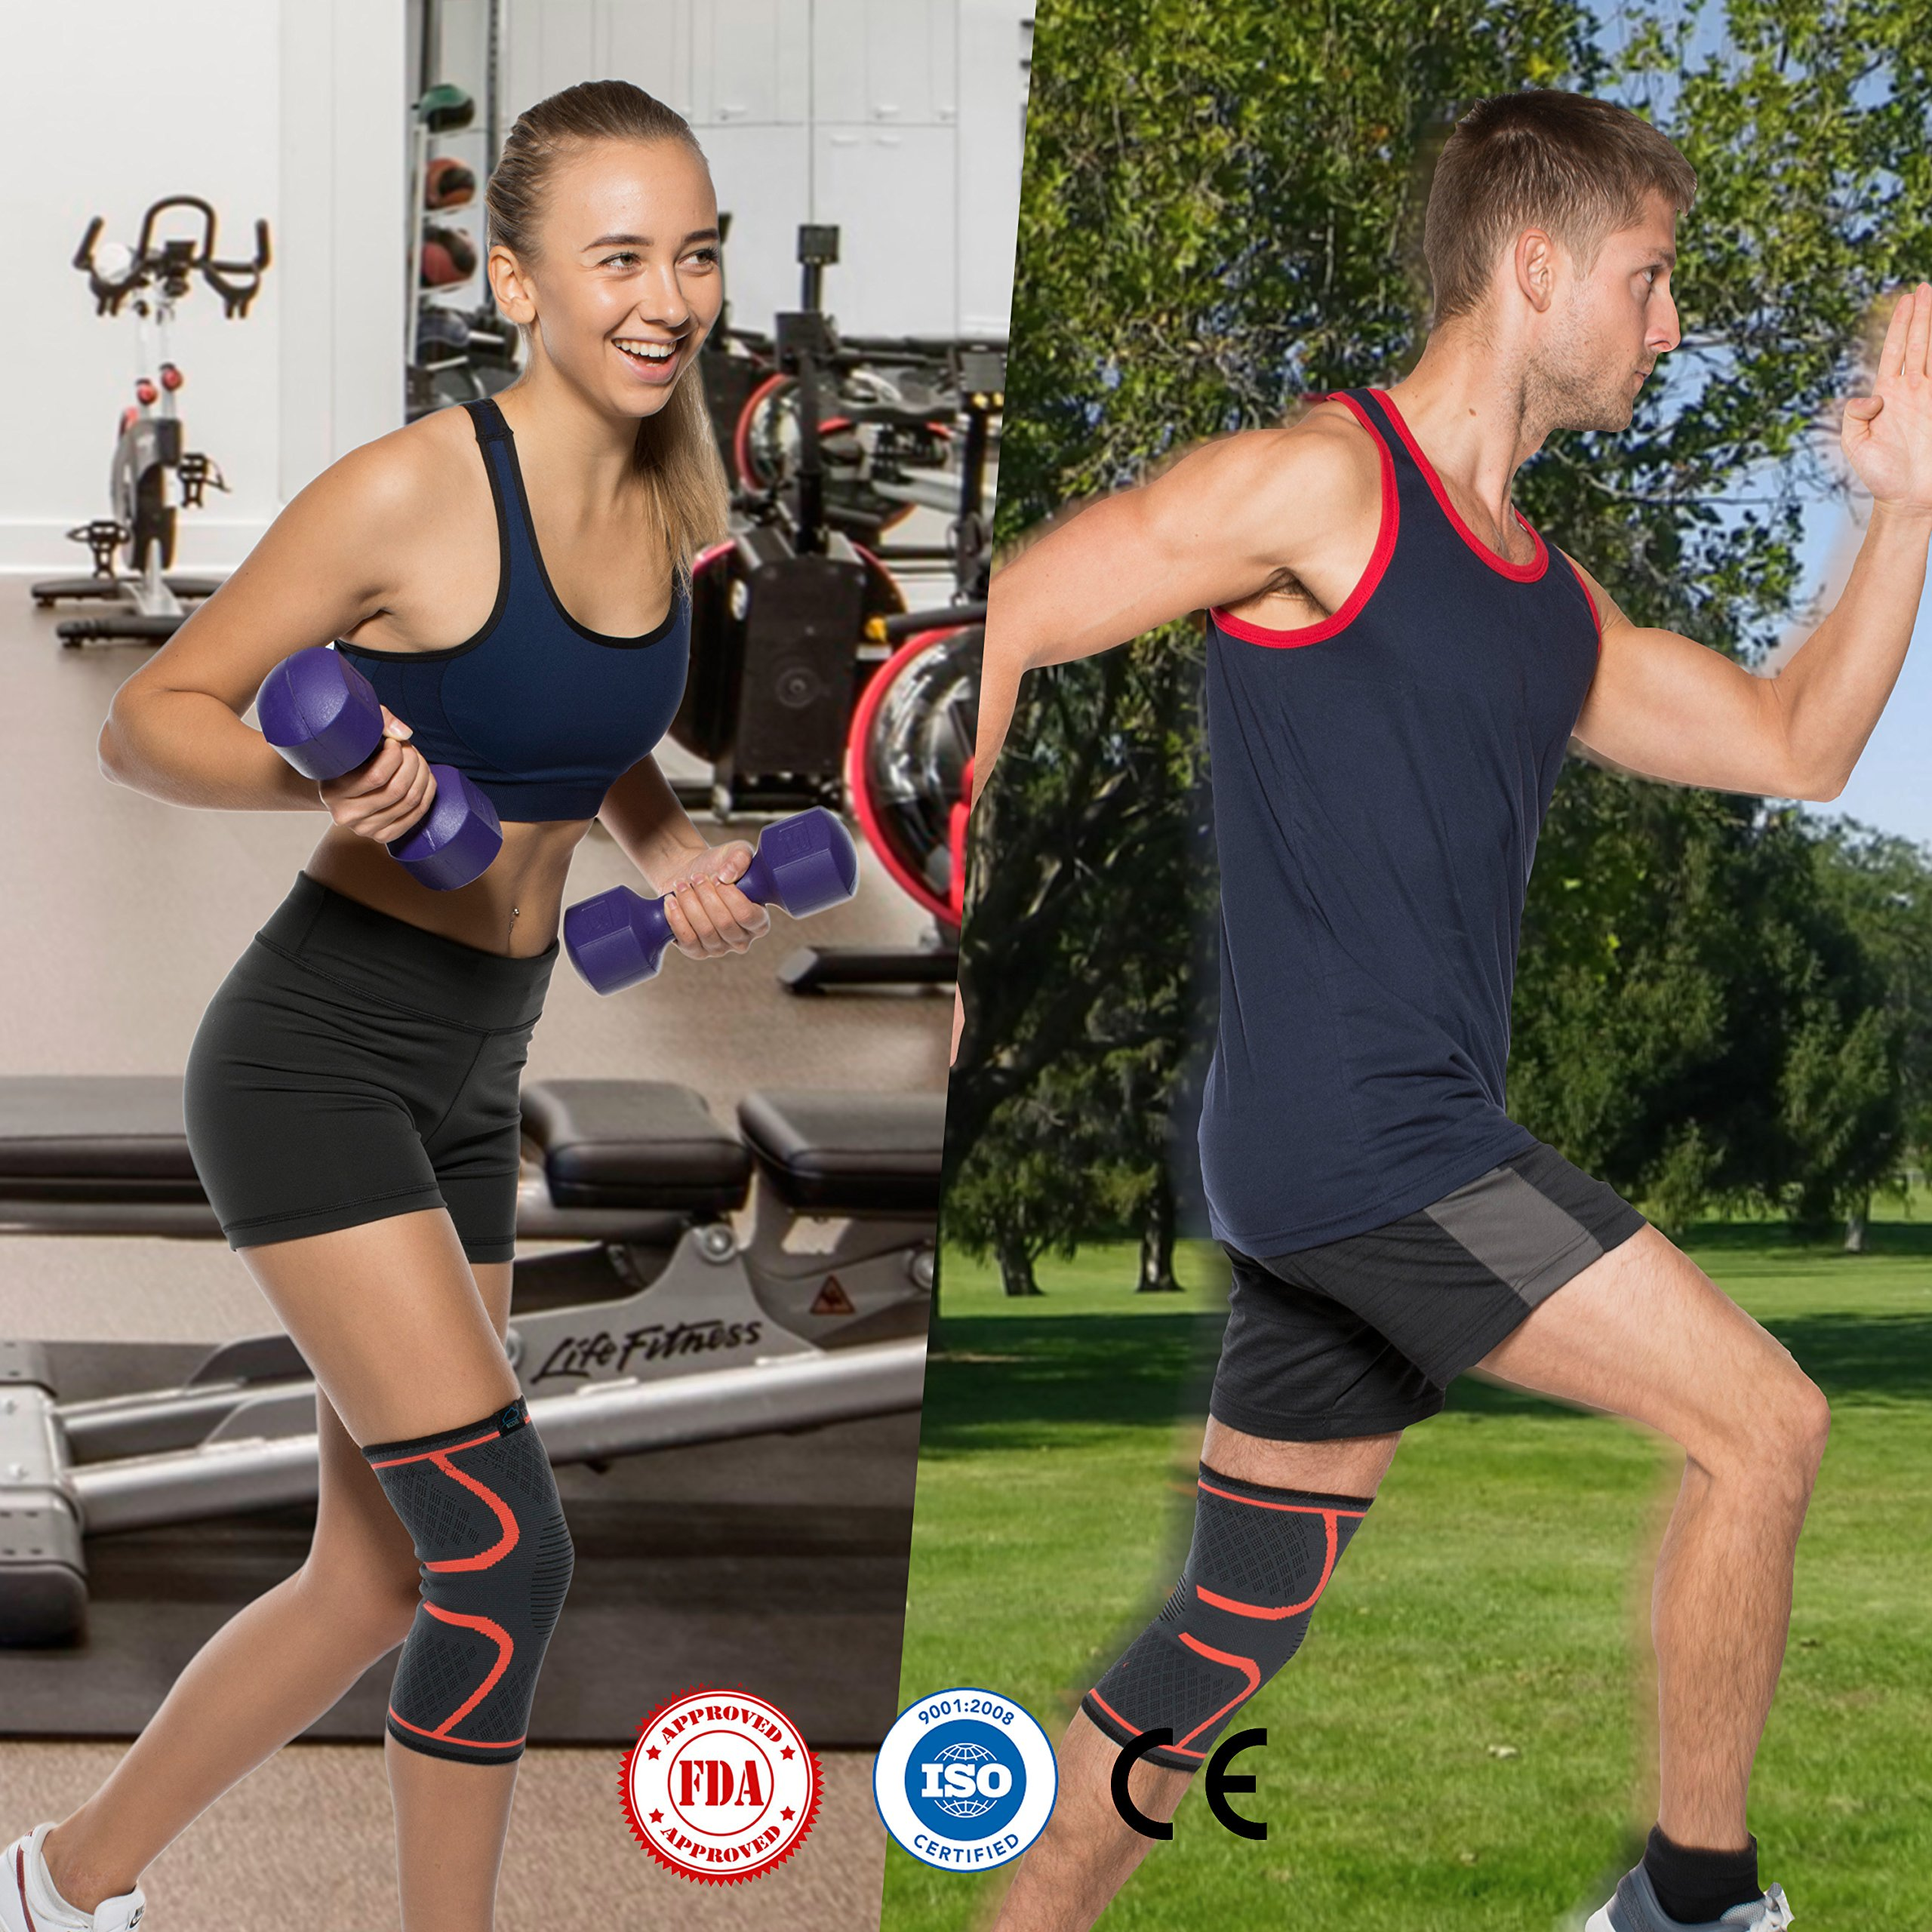 Modvel Compression Knee Sleeve (1 Pair) - Ultra Flexible, Comfortable Knee Brace for Men and Women, Great for All Athletics, Volleyball, ACL, Stabilizer for Arthritis and Knee Pain Relief, M (MV-111) by Modvel (Image #6)